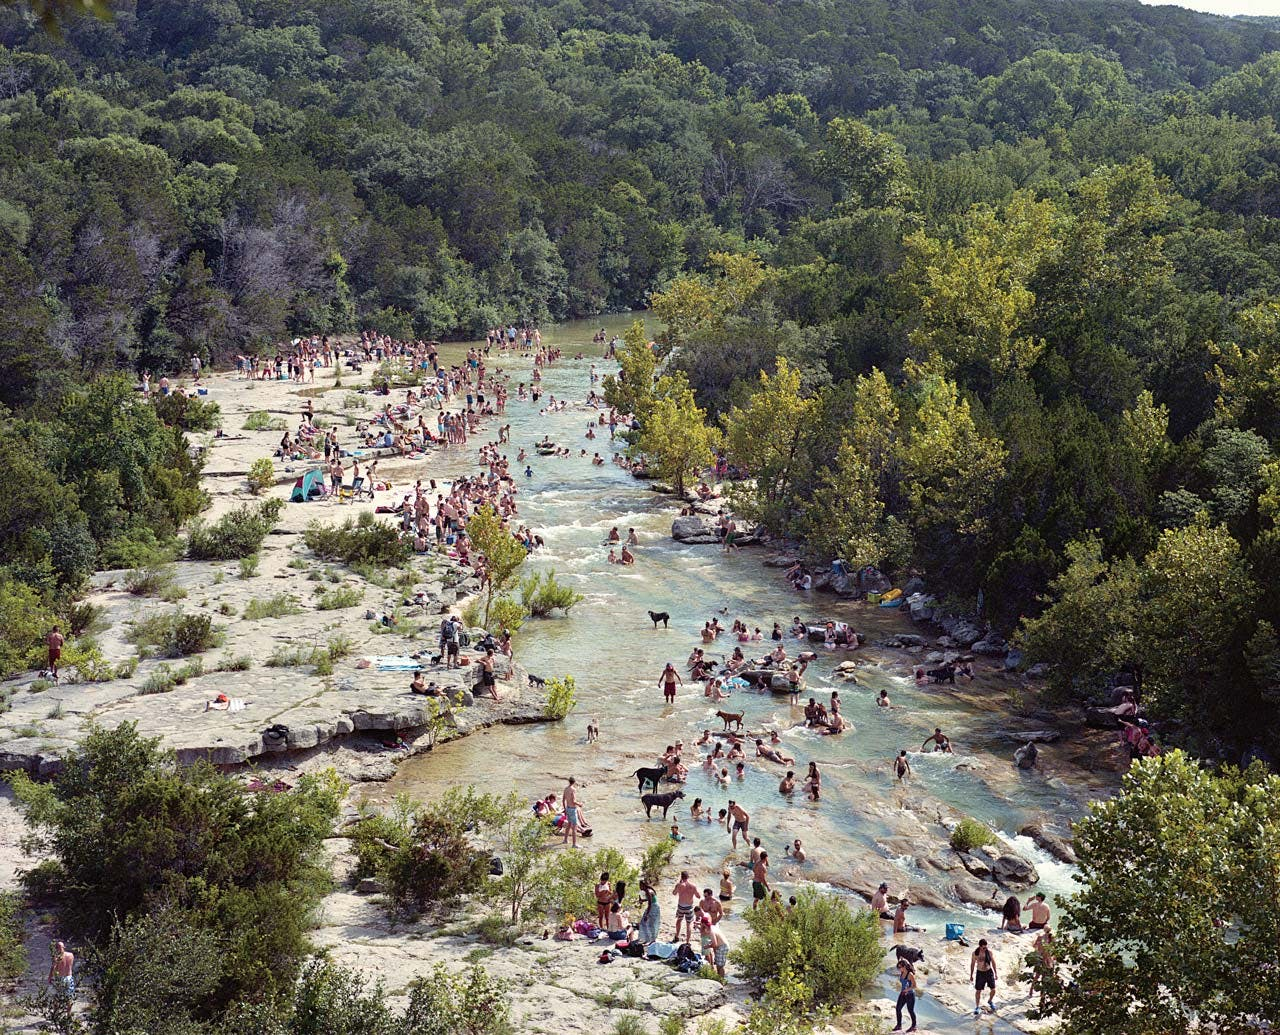 The Barton Creek Greenbelt.